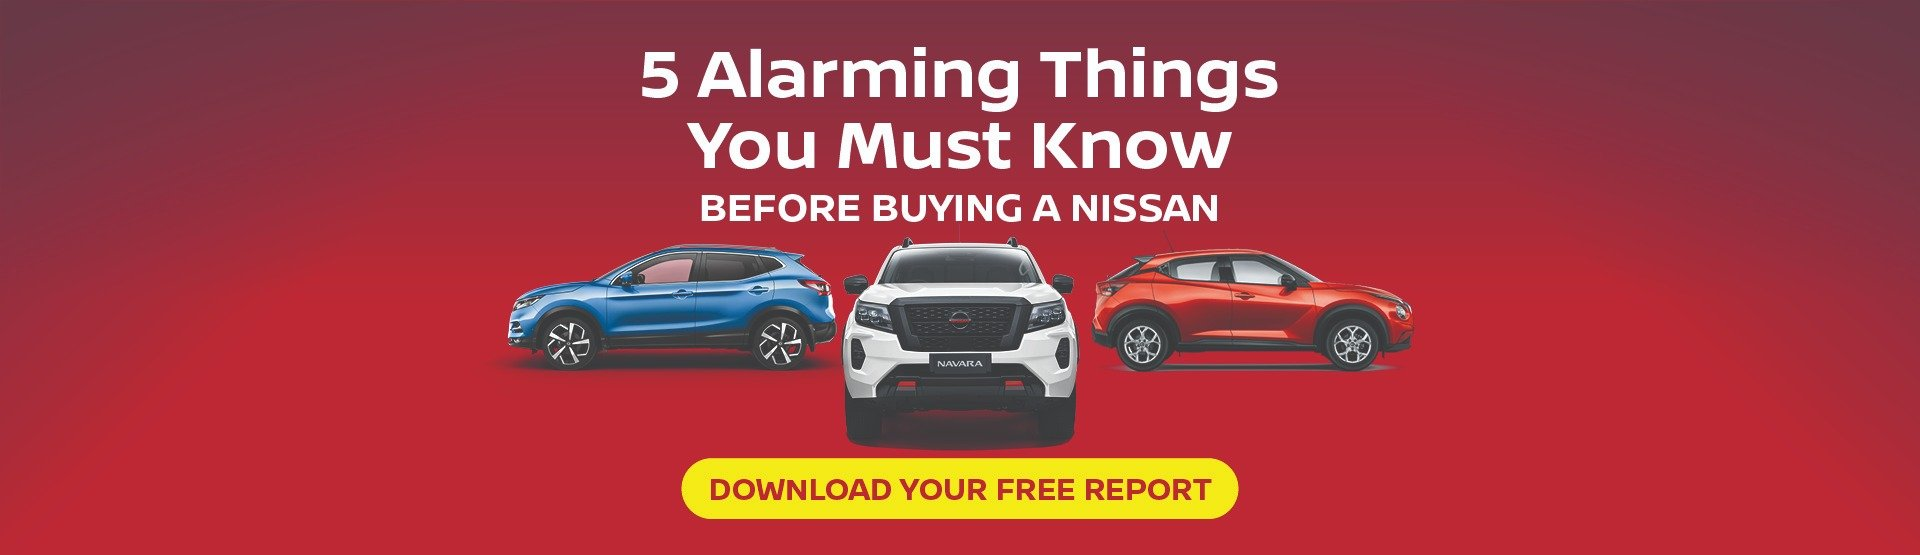 Nissan Campaign